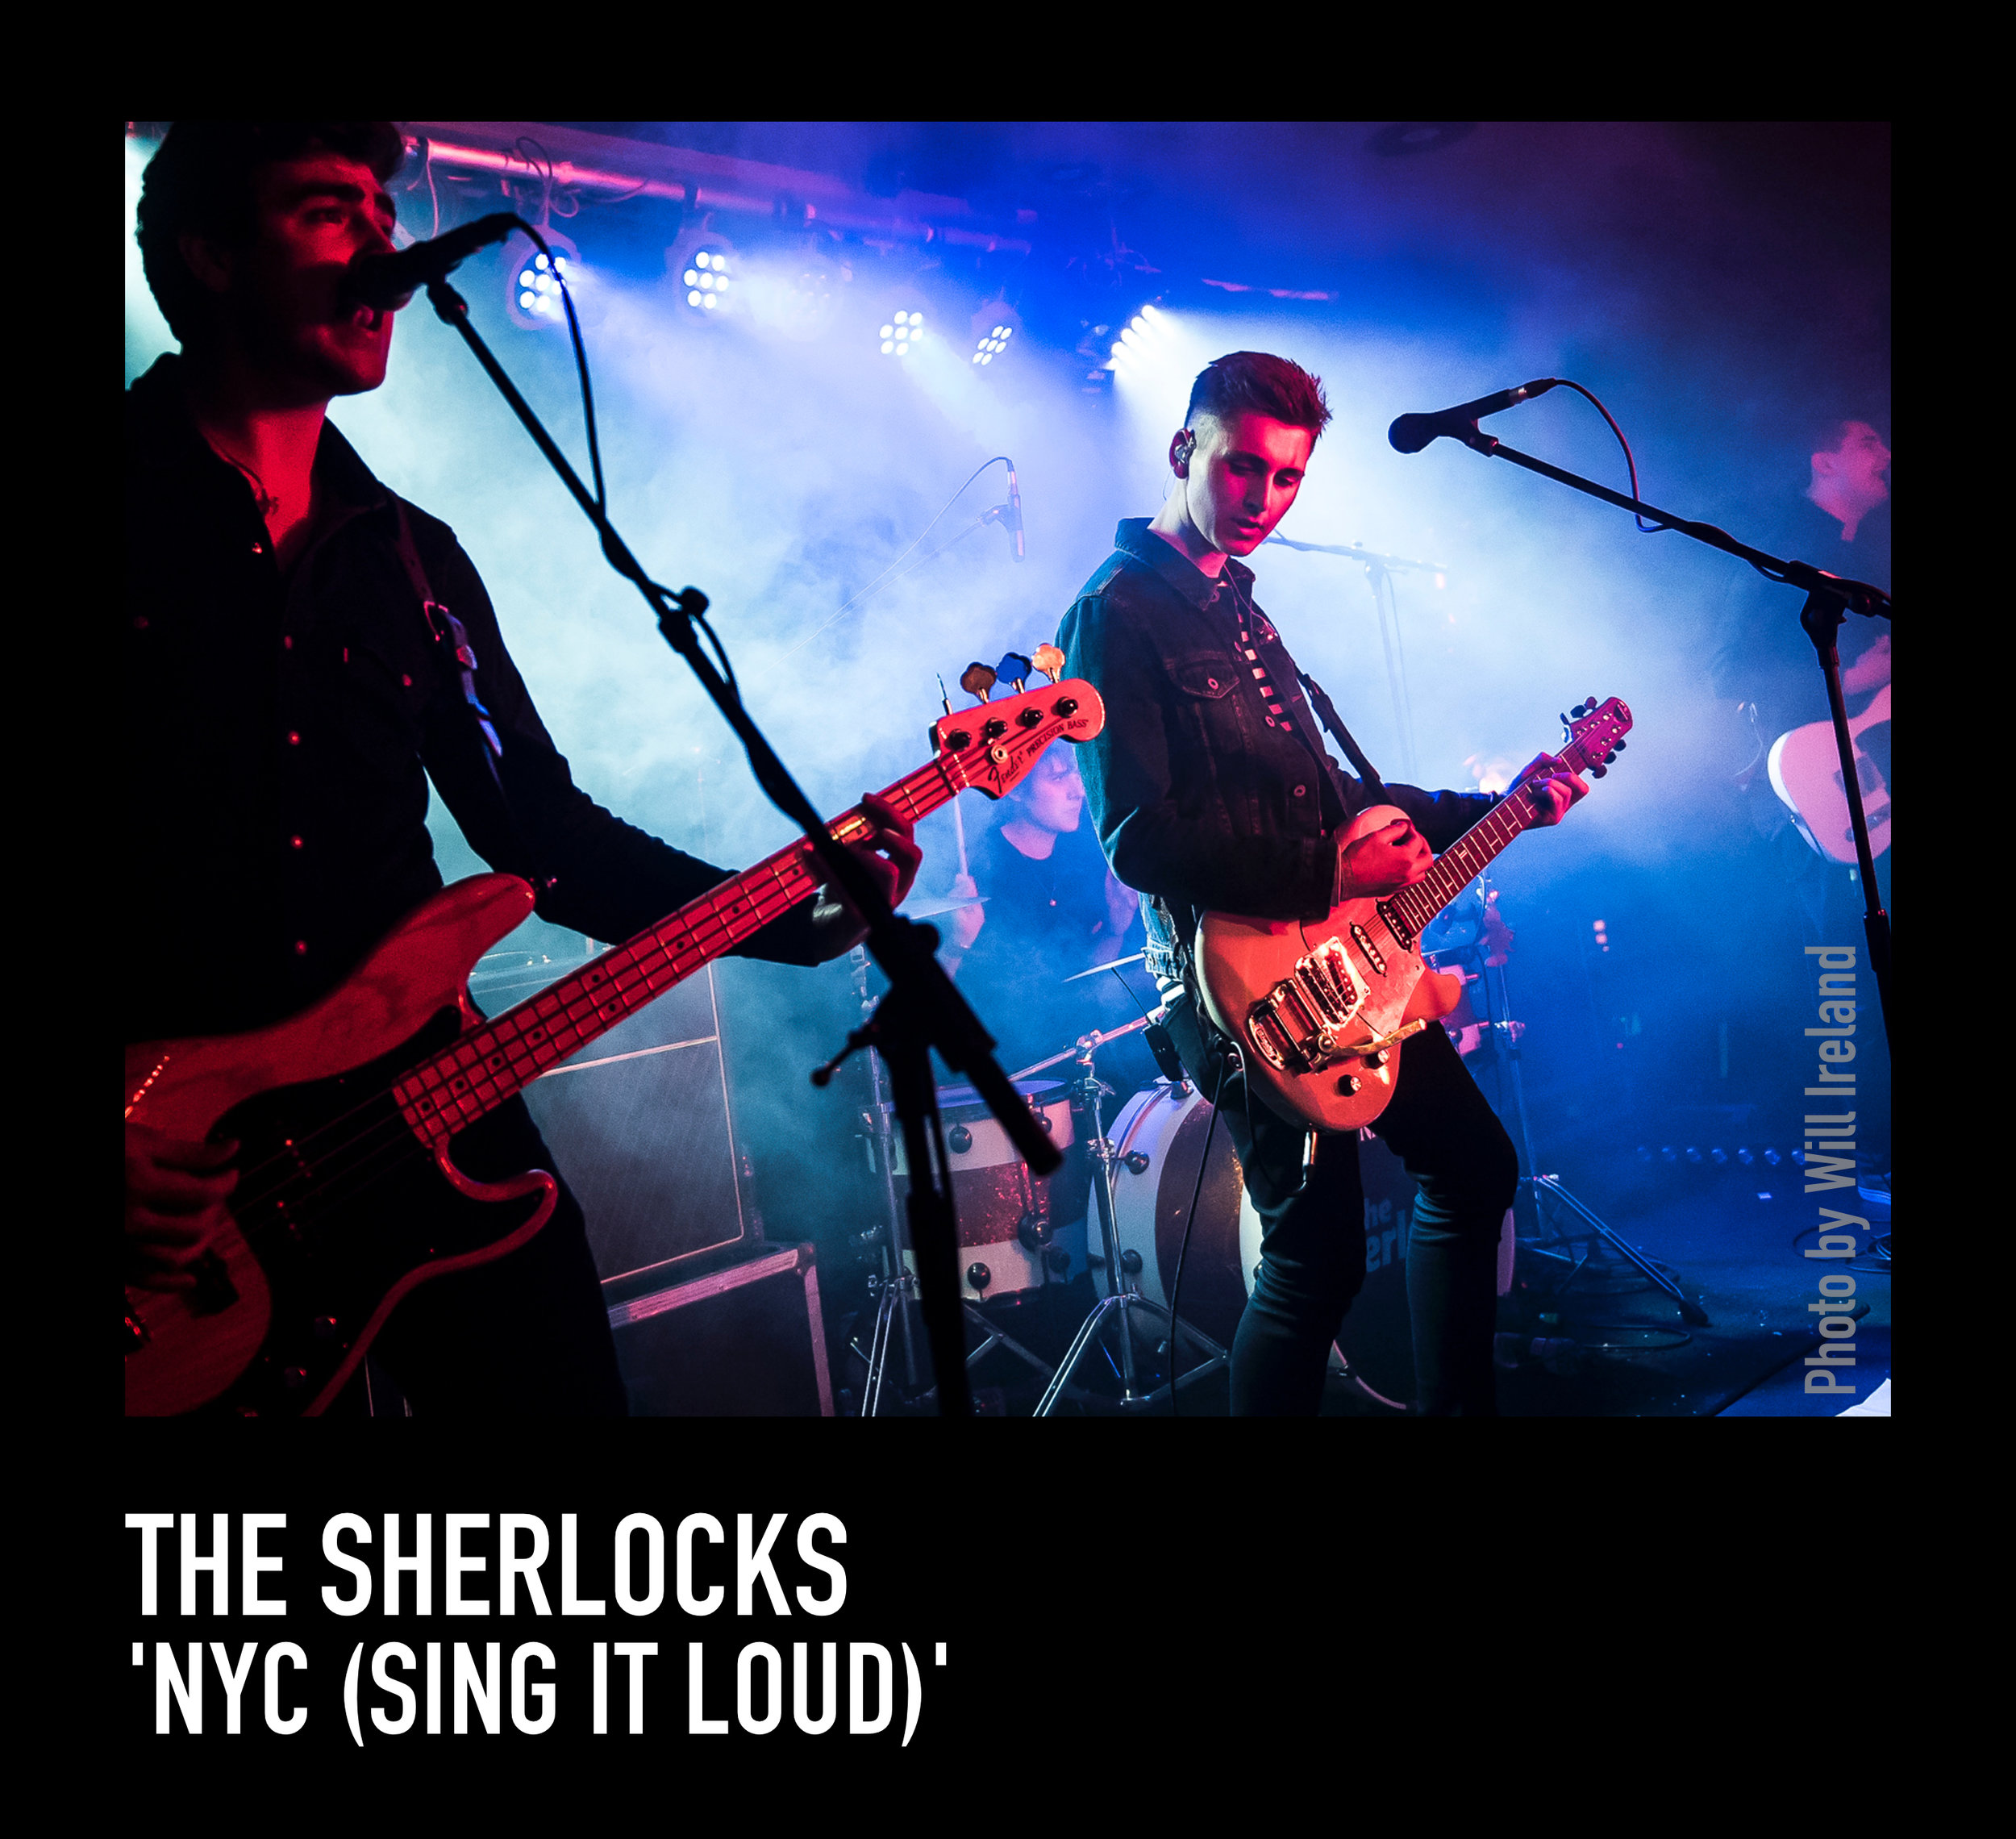 The Sherlocks return with soaring new single 'NYC (Sing It Loud), the video starrs This Is England and Game Of Thrones star Thomas Turgoose